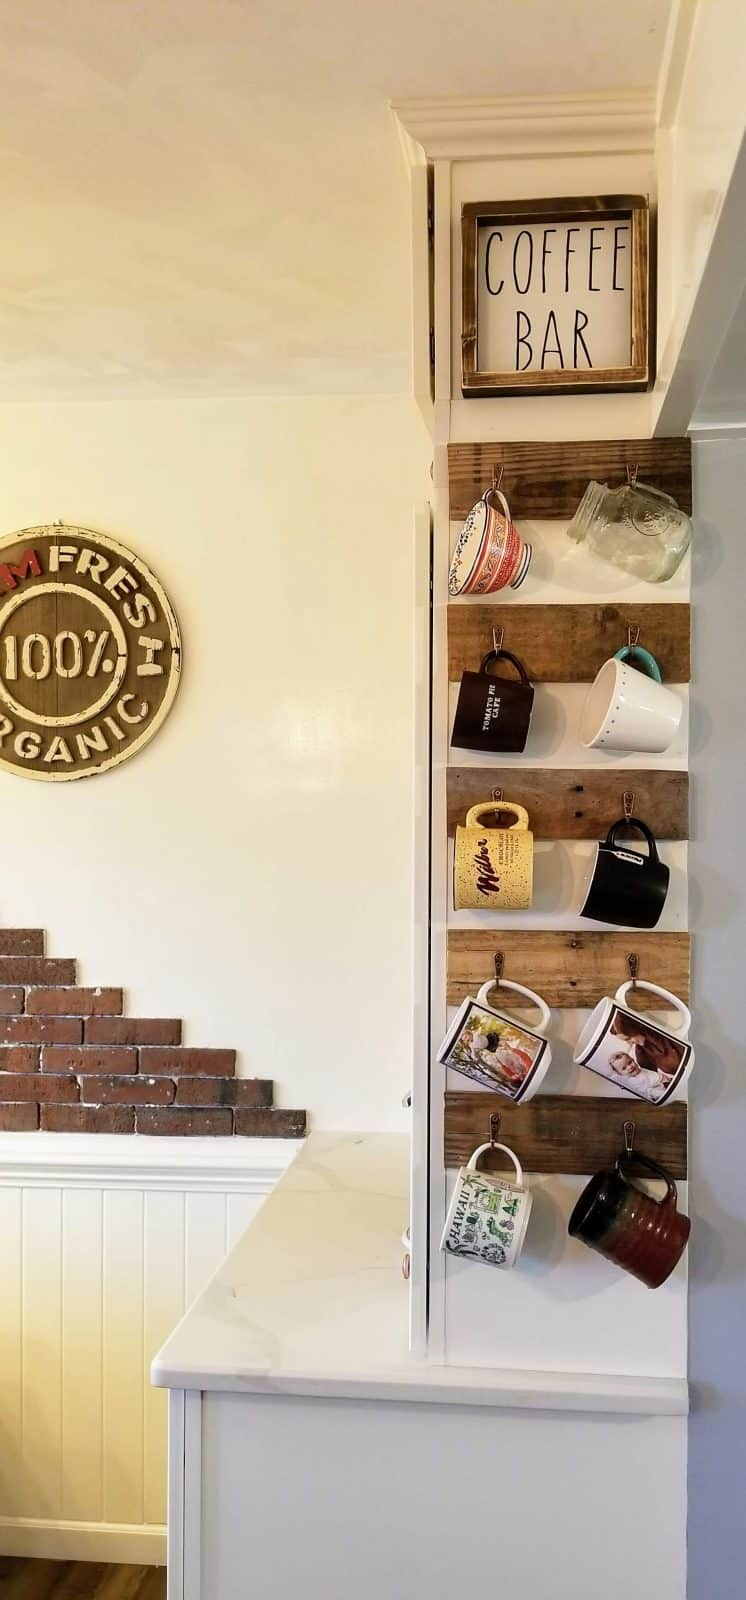 How to Add a Pallet Mug Rack in 3 Easy Steps